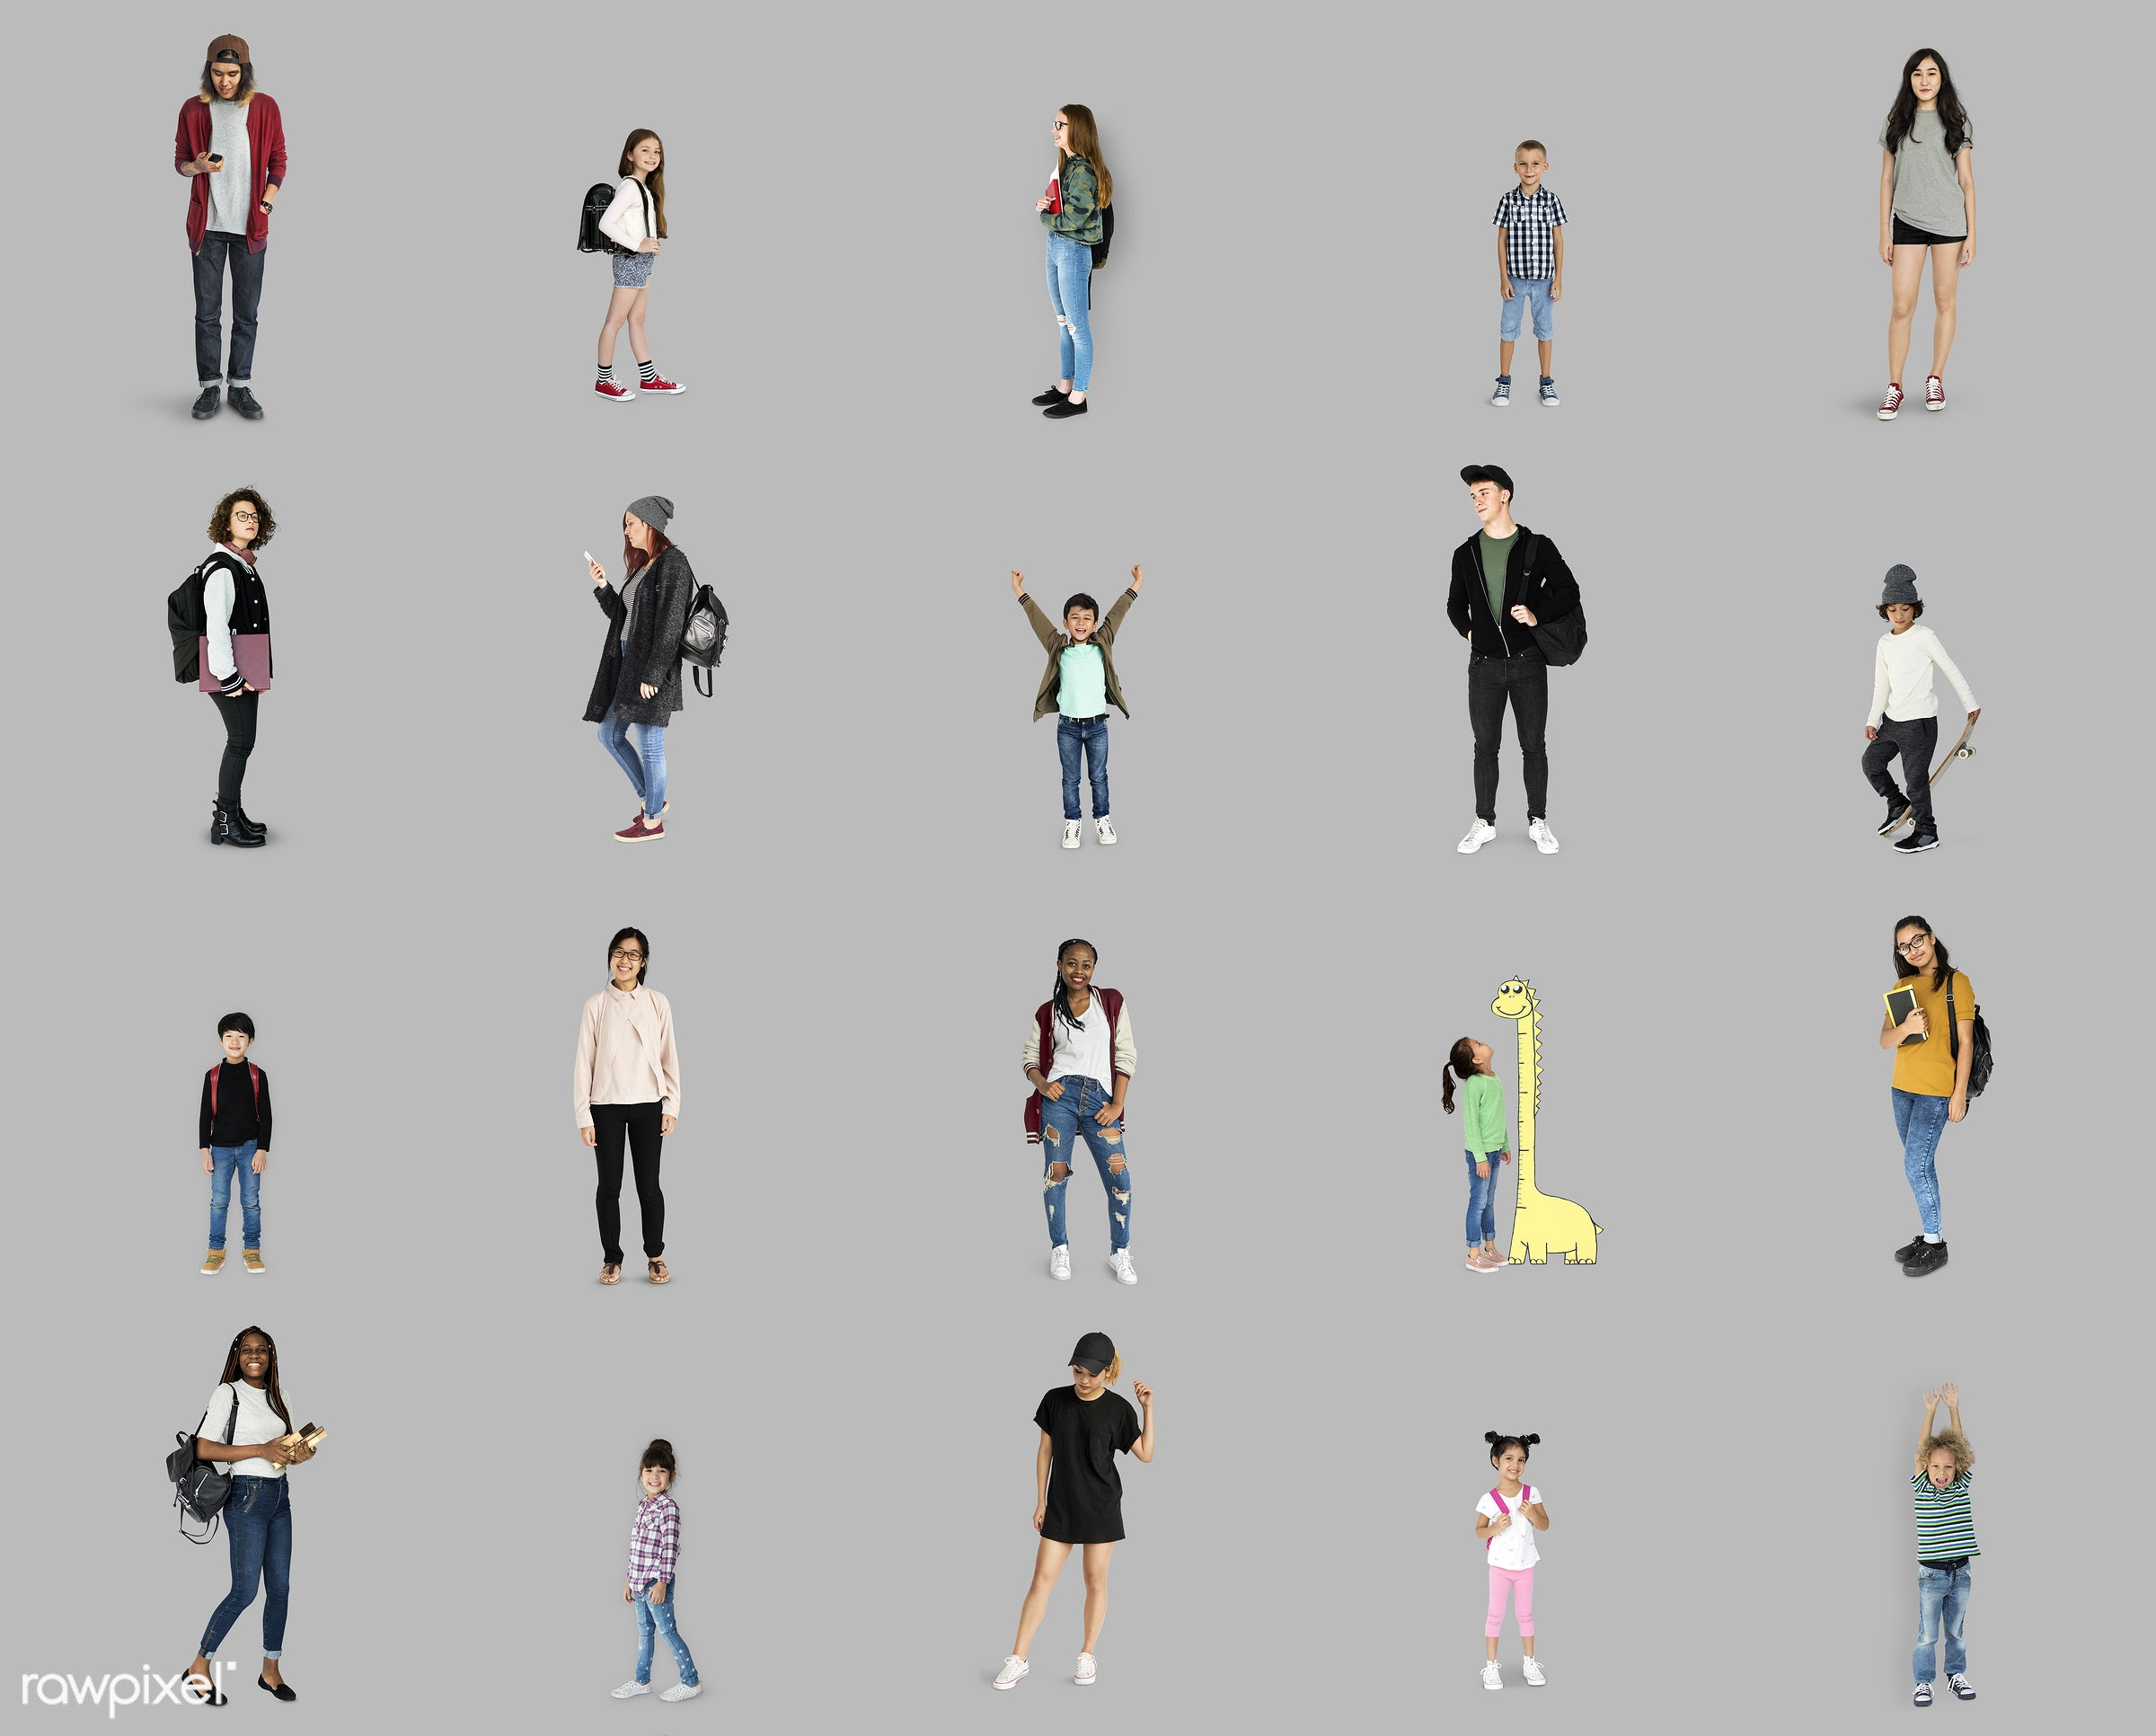 studio, person, diverse, college, little, study, people, kid, woman, lifestyle, studio squareset, cheerful, isolated,...